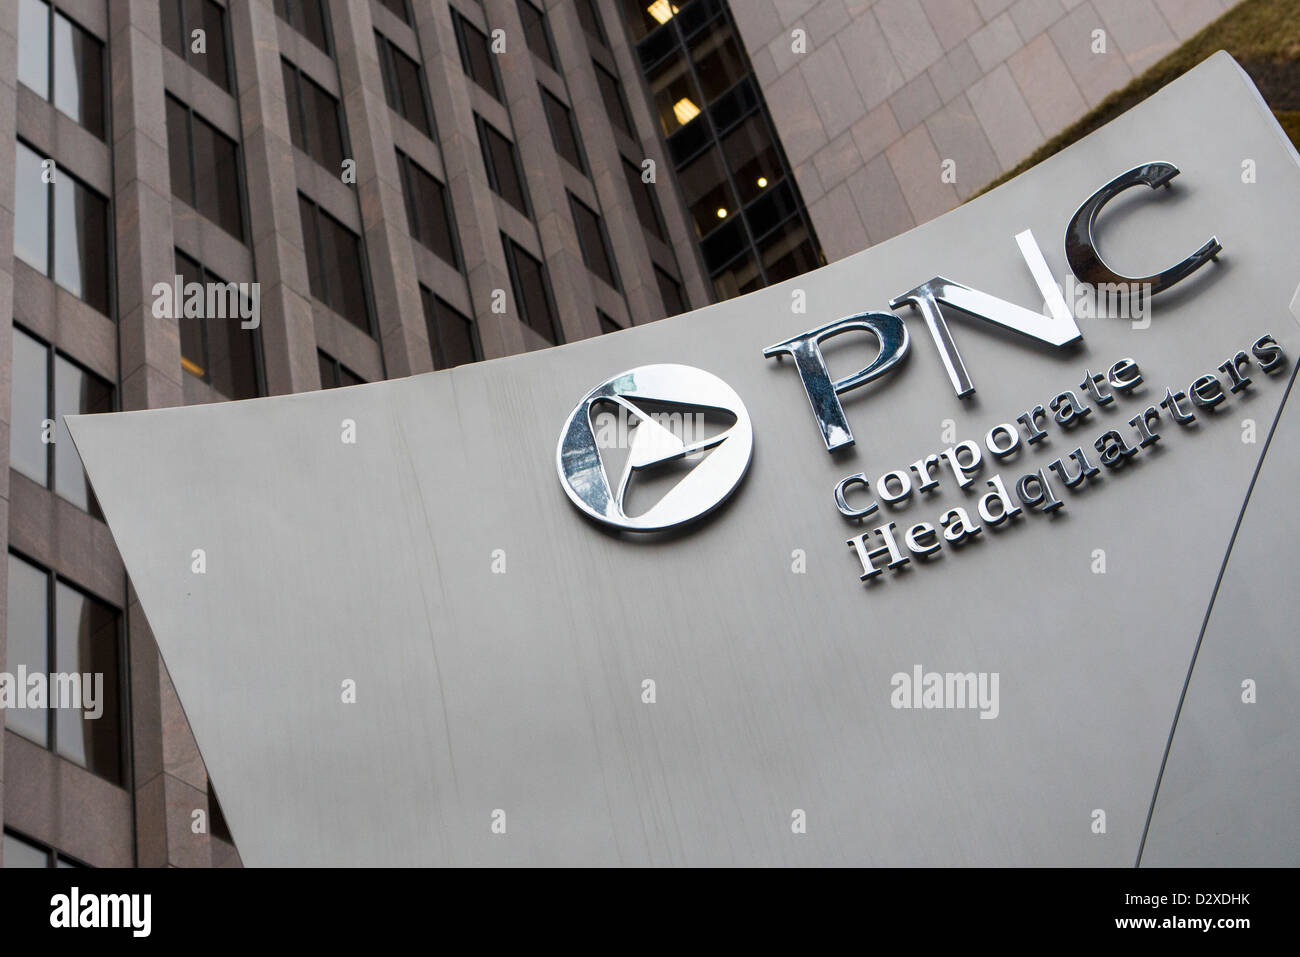 Das Hauptquartier der PNC Financial Services Group, Inc. Stockbild